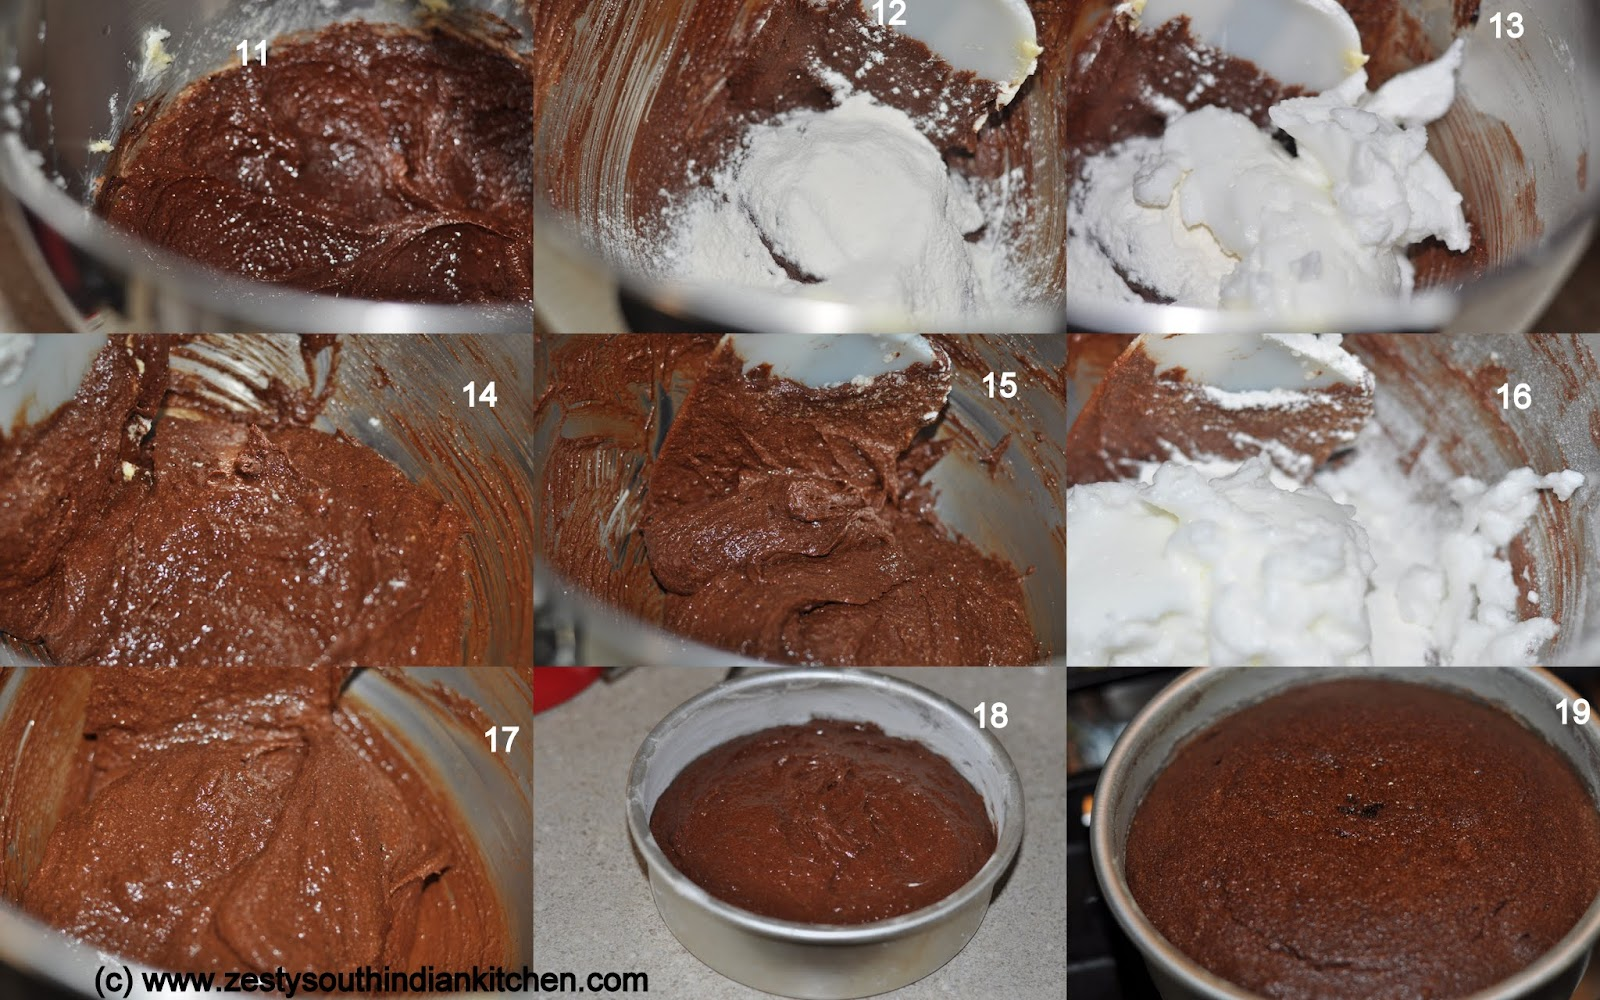 Leave the cake in pan for 10 minutes remove and cool it in rack for 2 ...